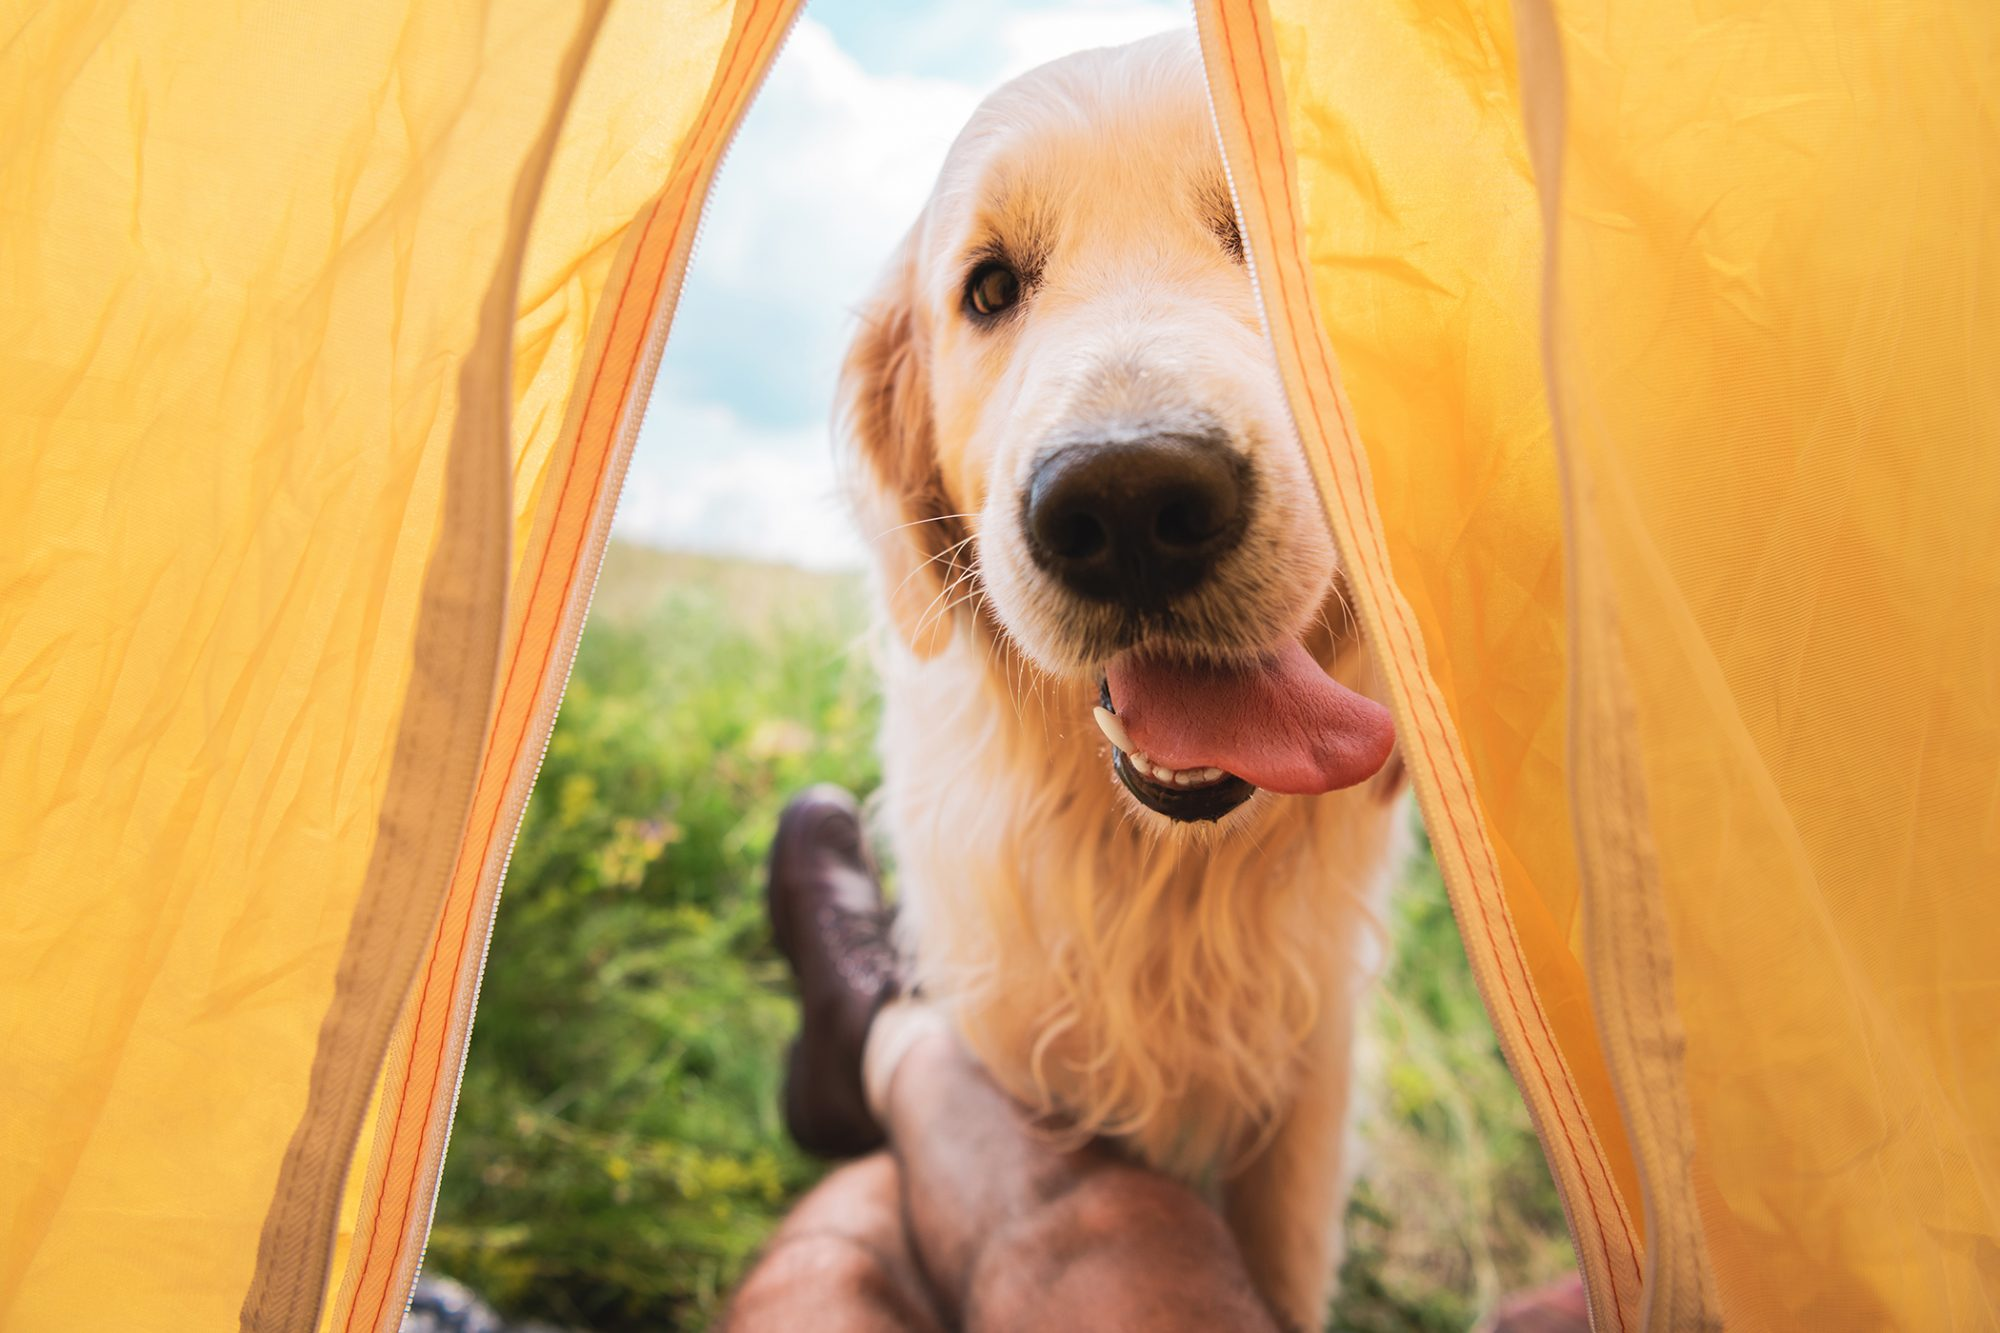 cropped view of traveler in tent with funny golden retriever dog